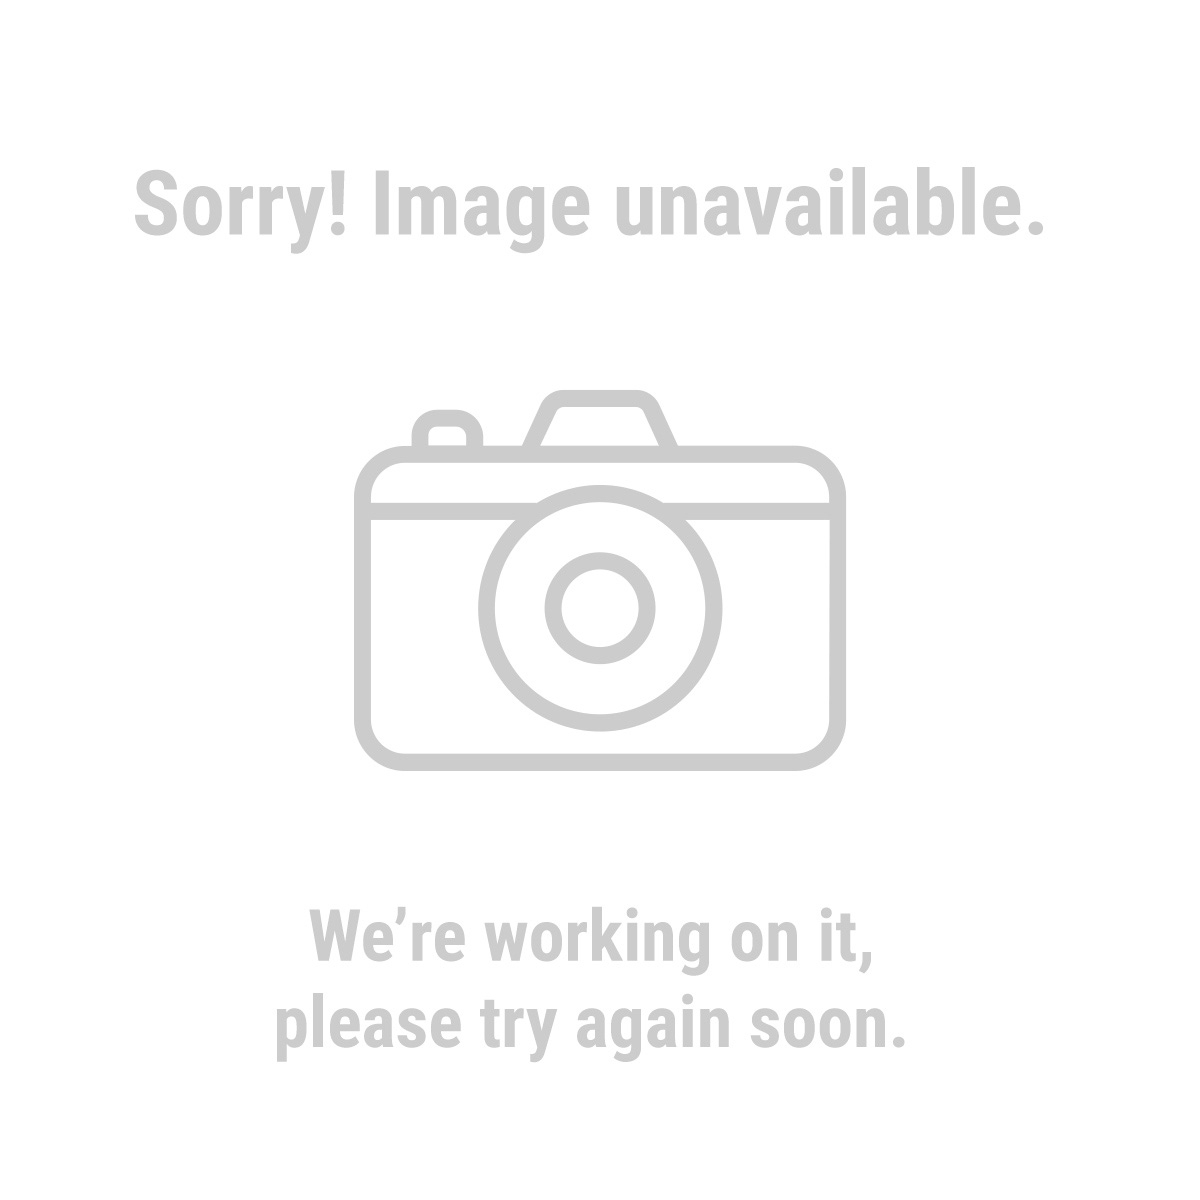 Haul-Master 46246 Left Submersible Trailer Light